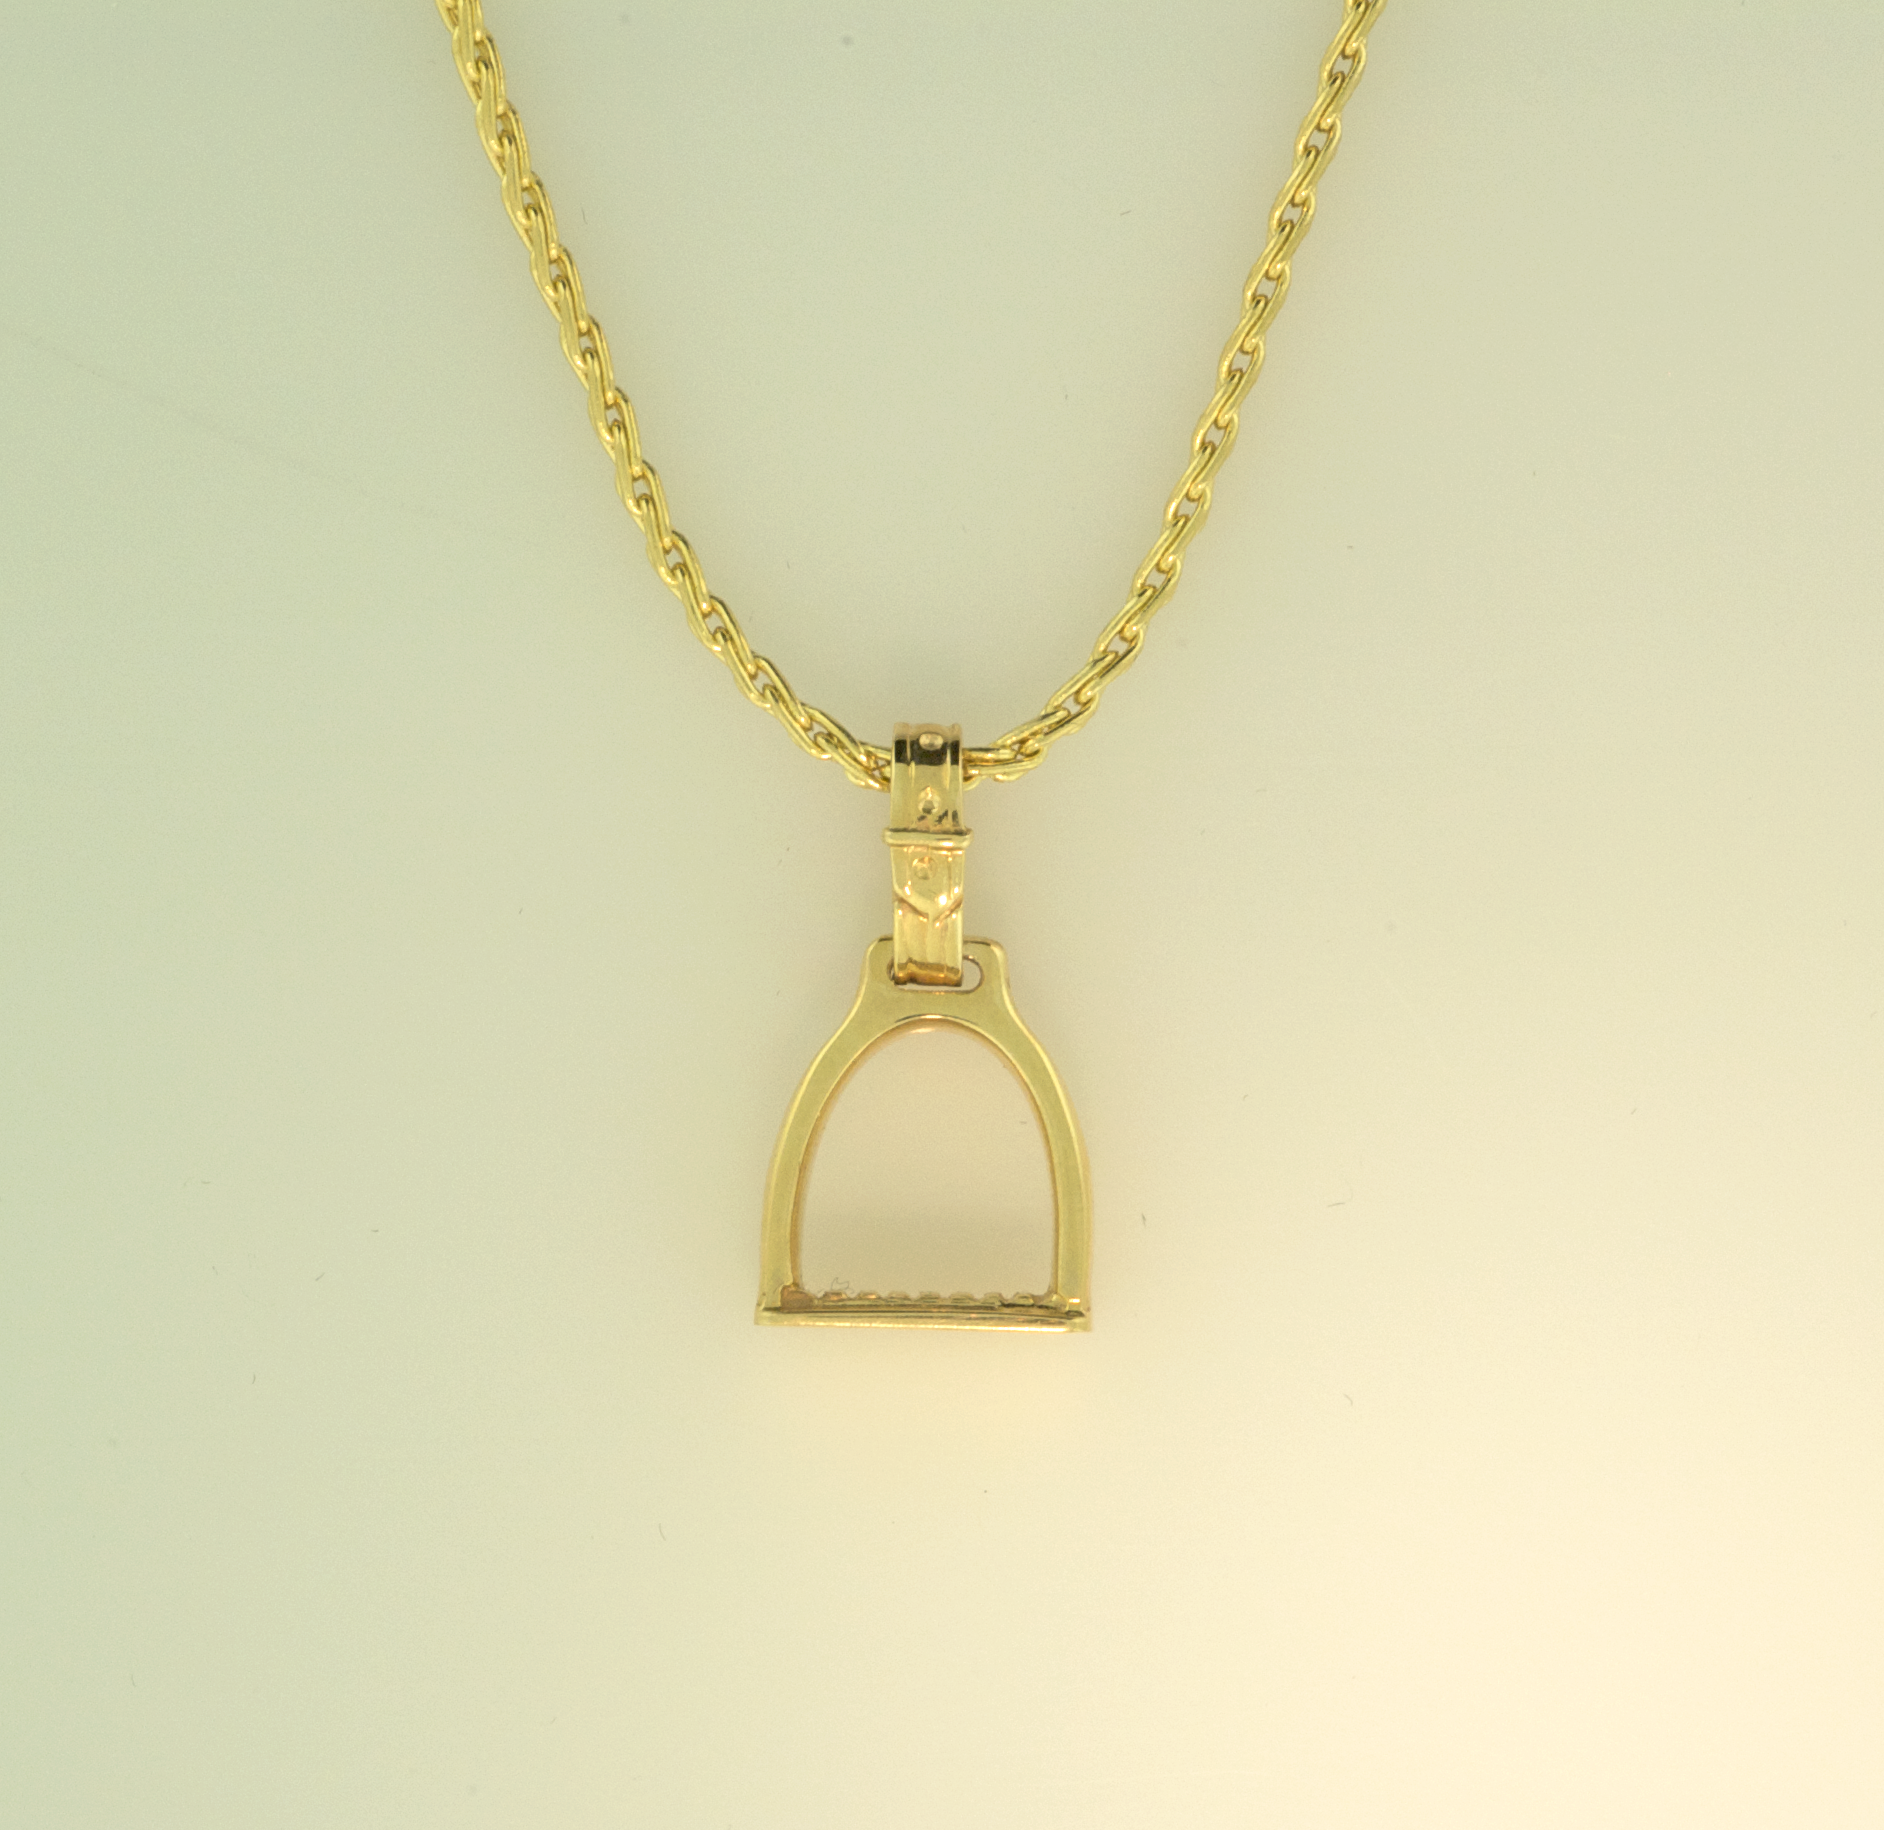 Necklace pieces thomas michaels designers 14kt yellow gold large stirrup pendant on 14kt yellow gold chain aloadofball Image collections